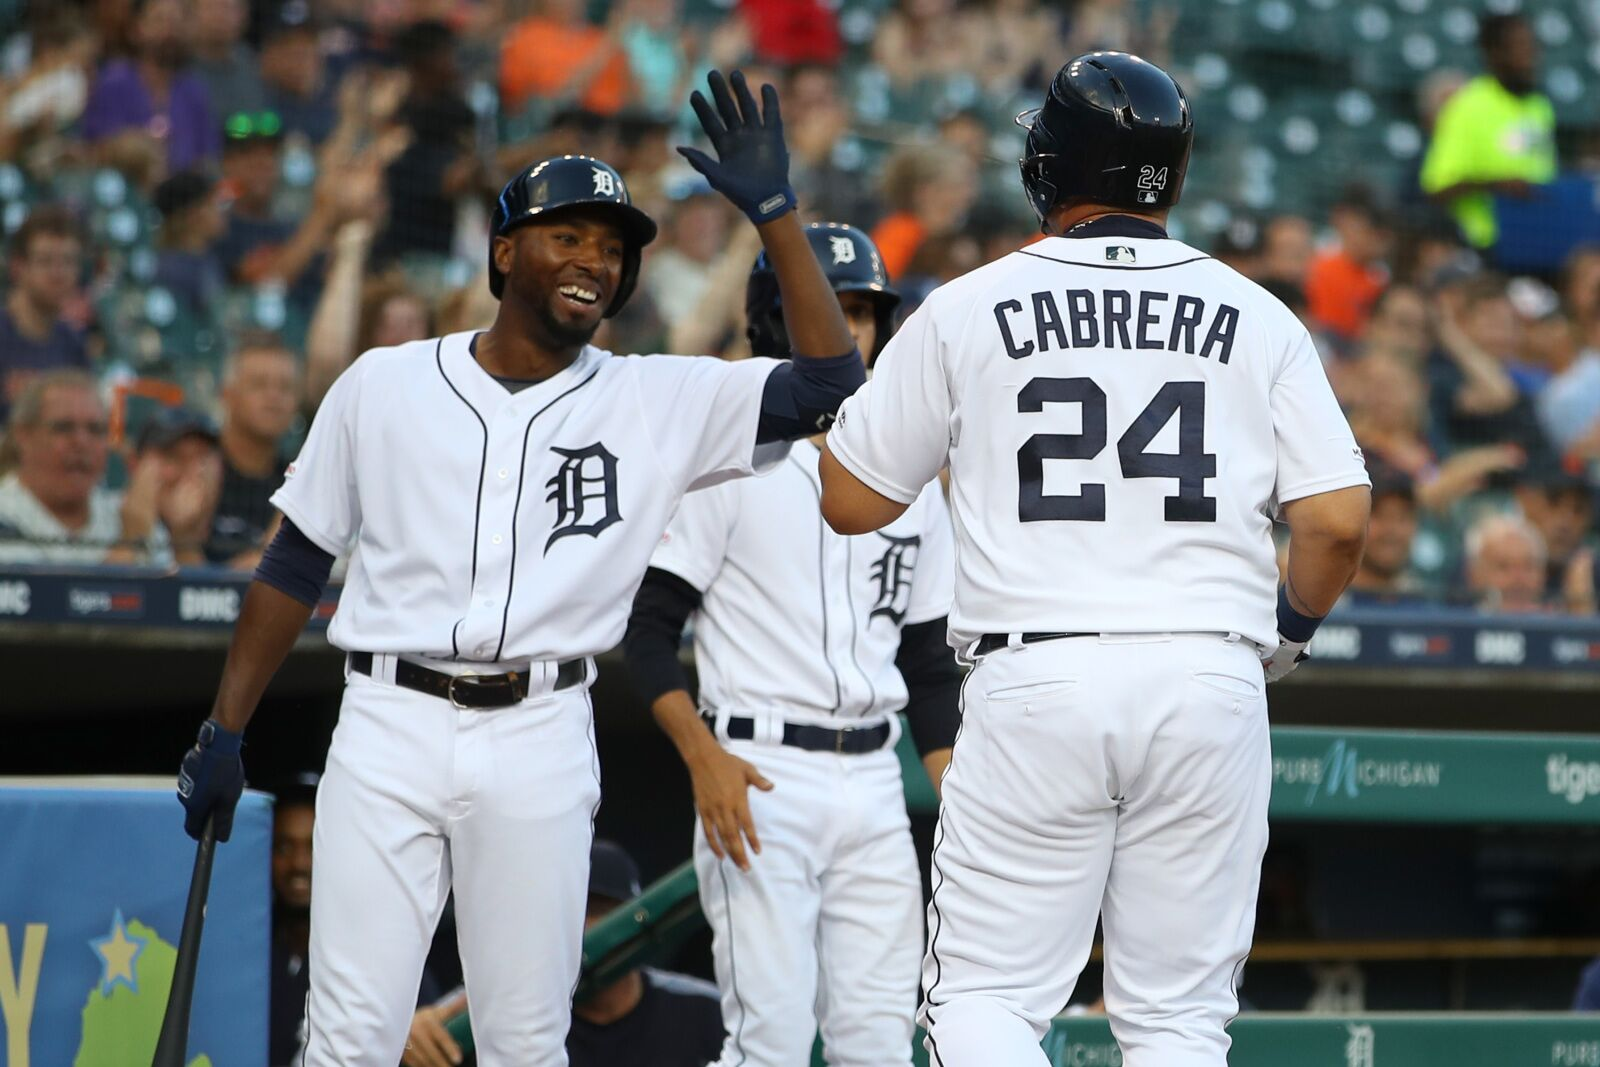 Detroit Tigers: Looking back on a rough 2019 season